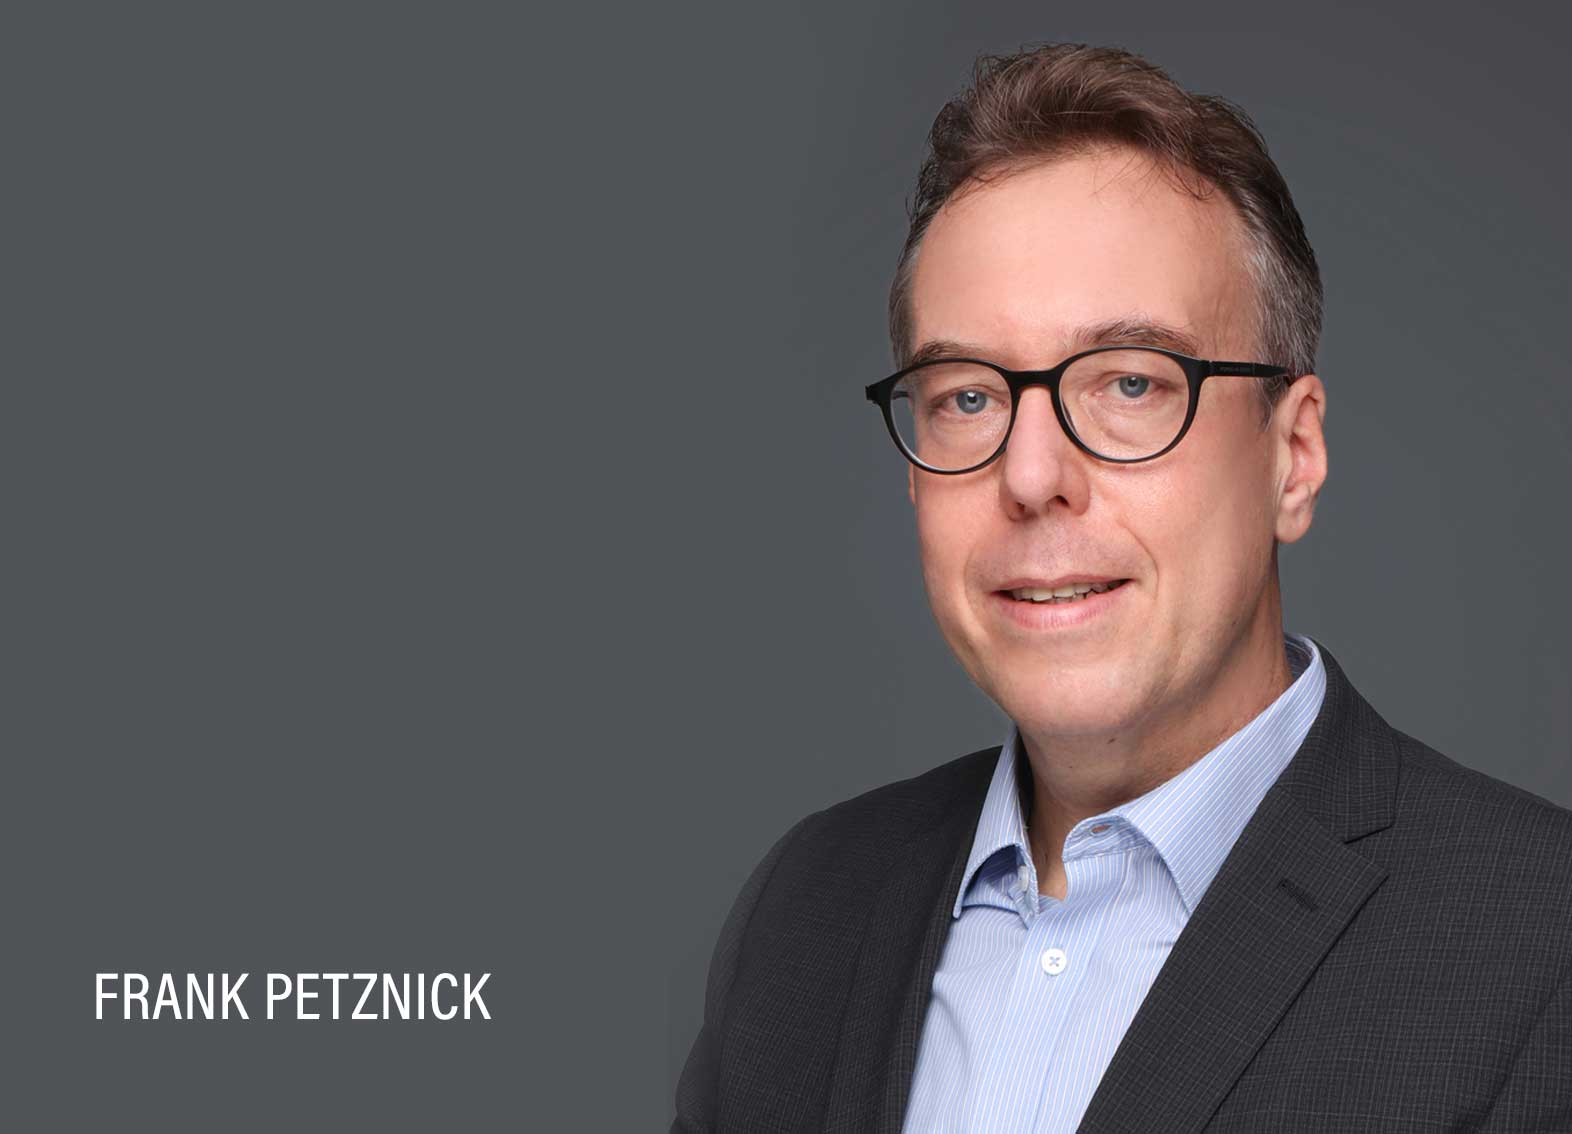 Frank Petznick to Become New Head of the Advanced Driver Assistance Systems Business Unit at Continental